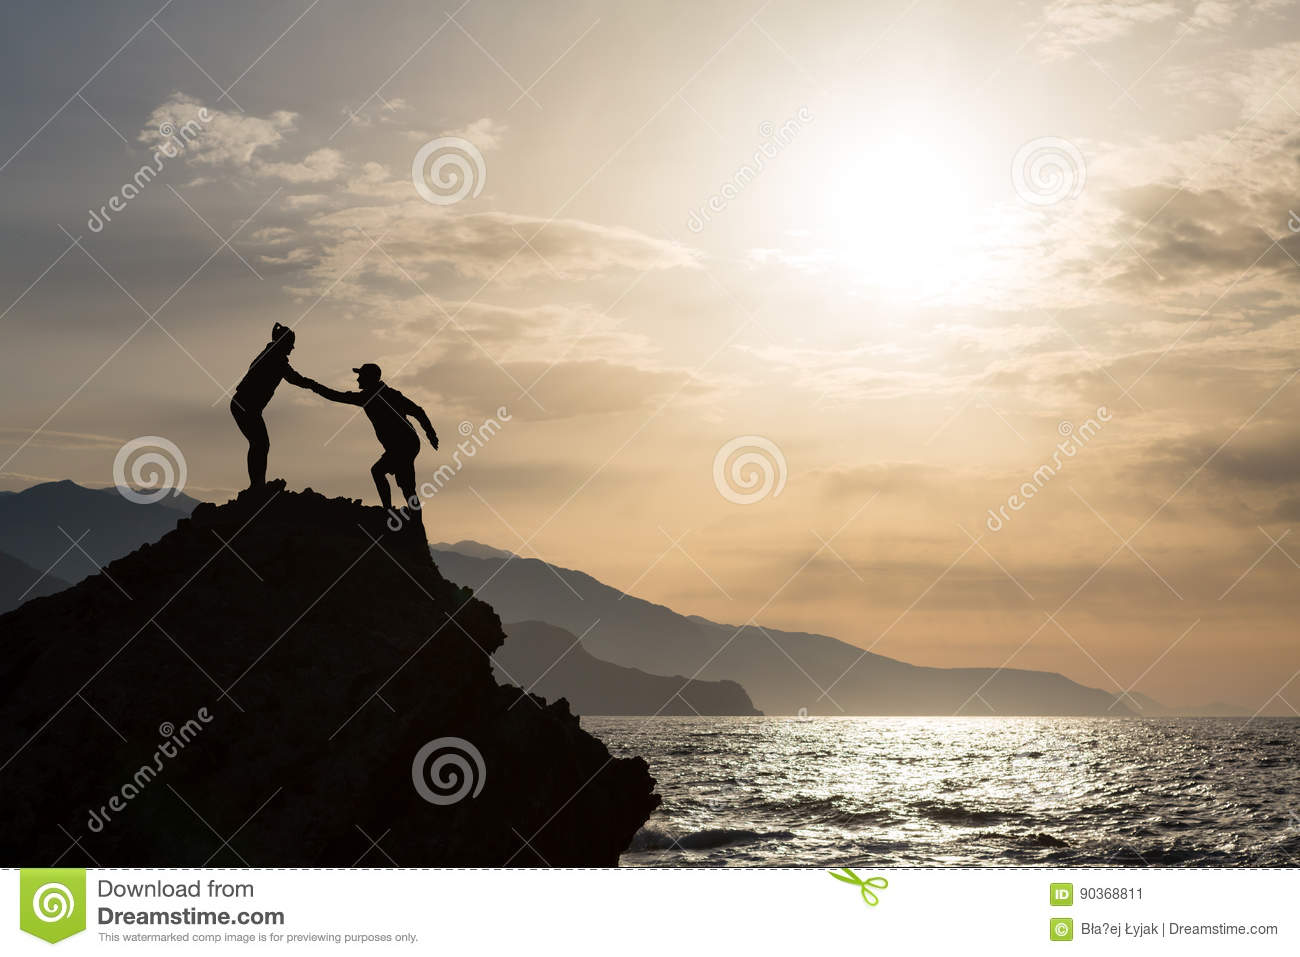 Teamwork couple climbing hiking with helping hand